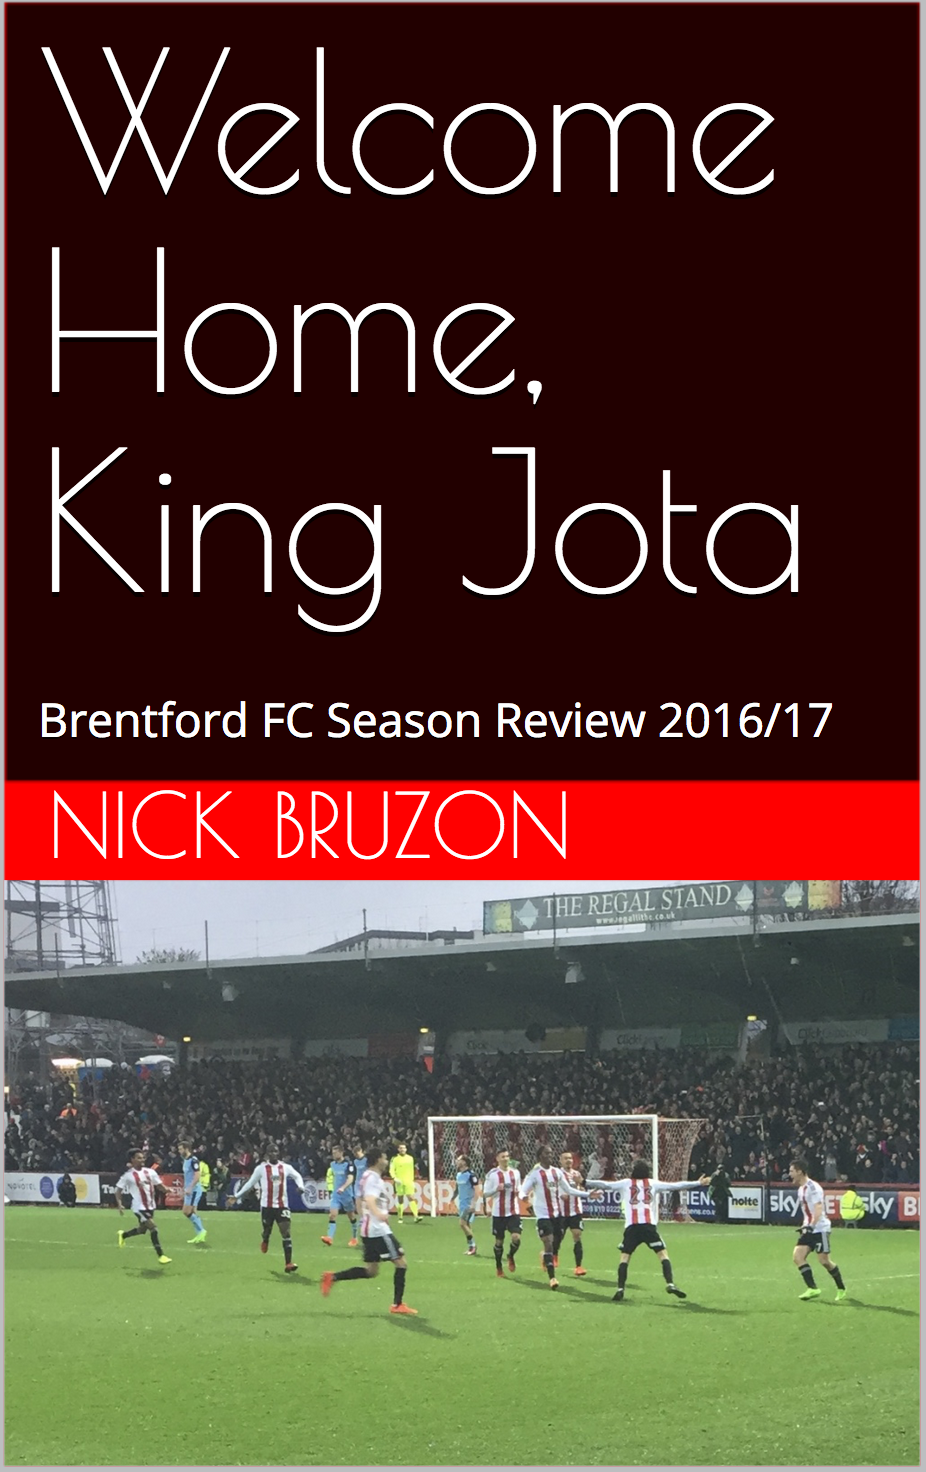 Welcome Home, King Jota – Brentford FC season review 2016/17